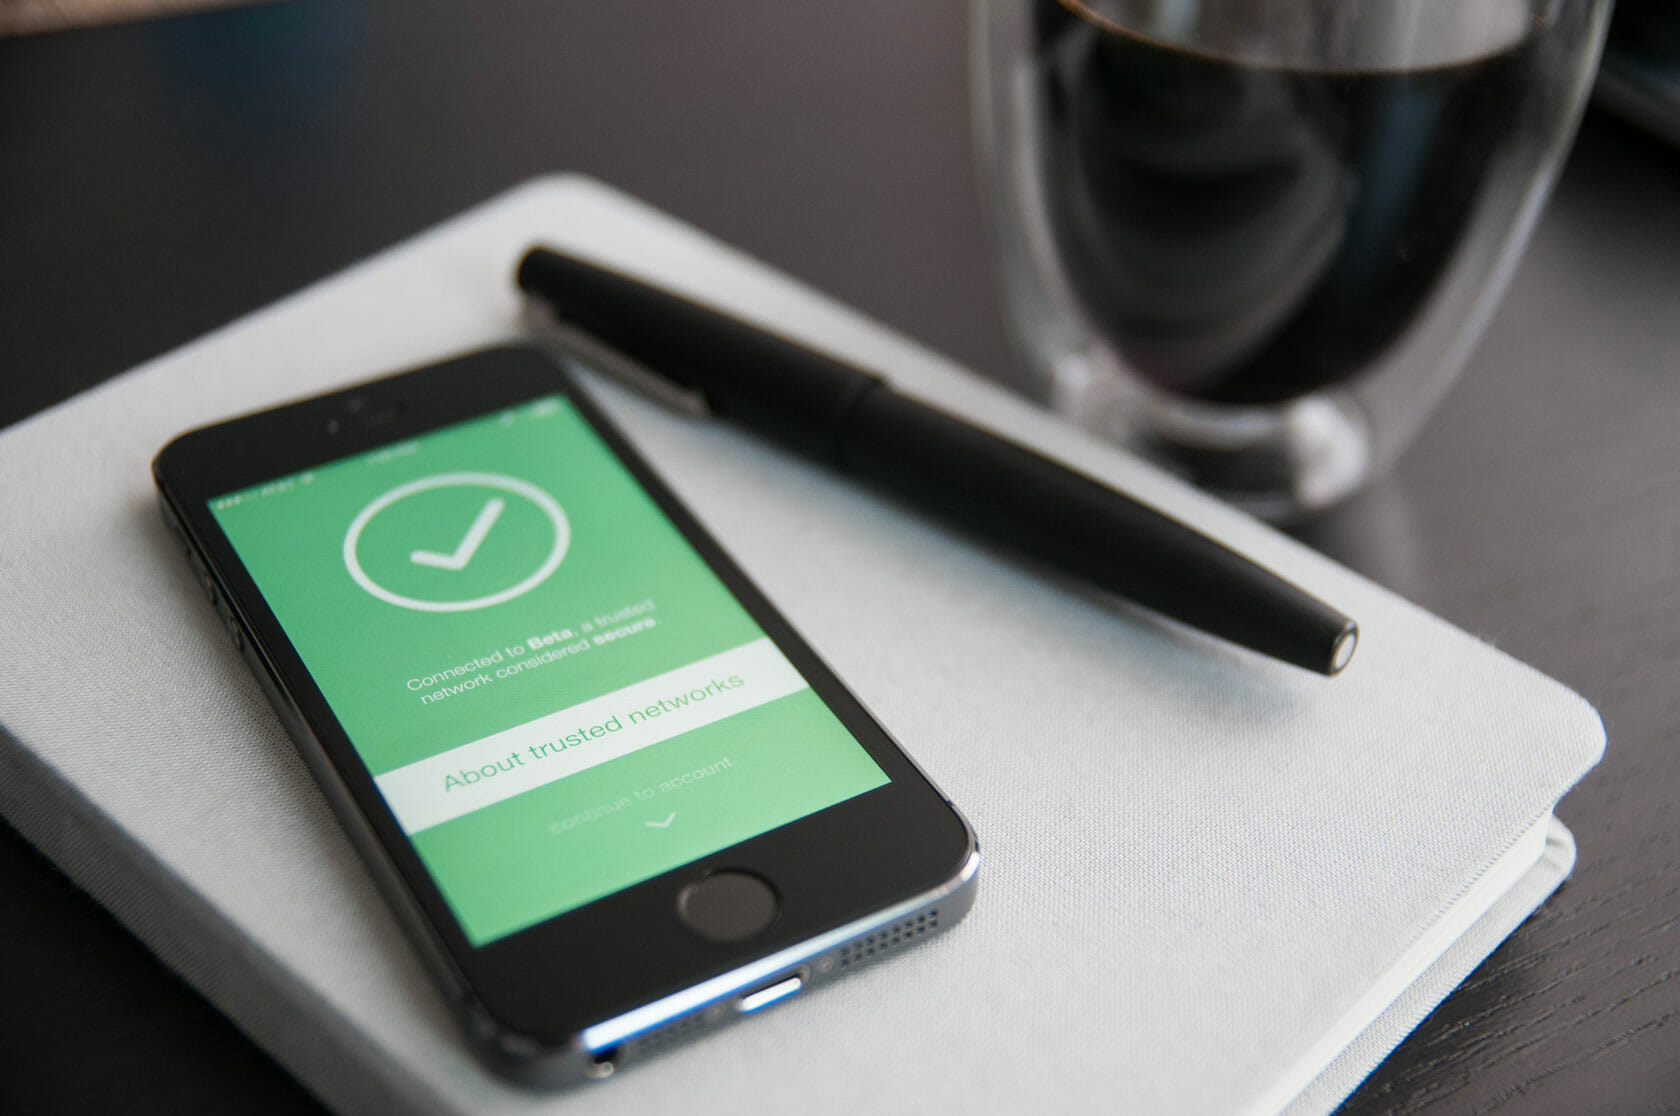 Best VPN App for All iOS Devices